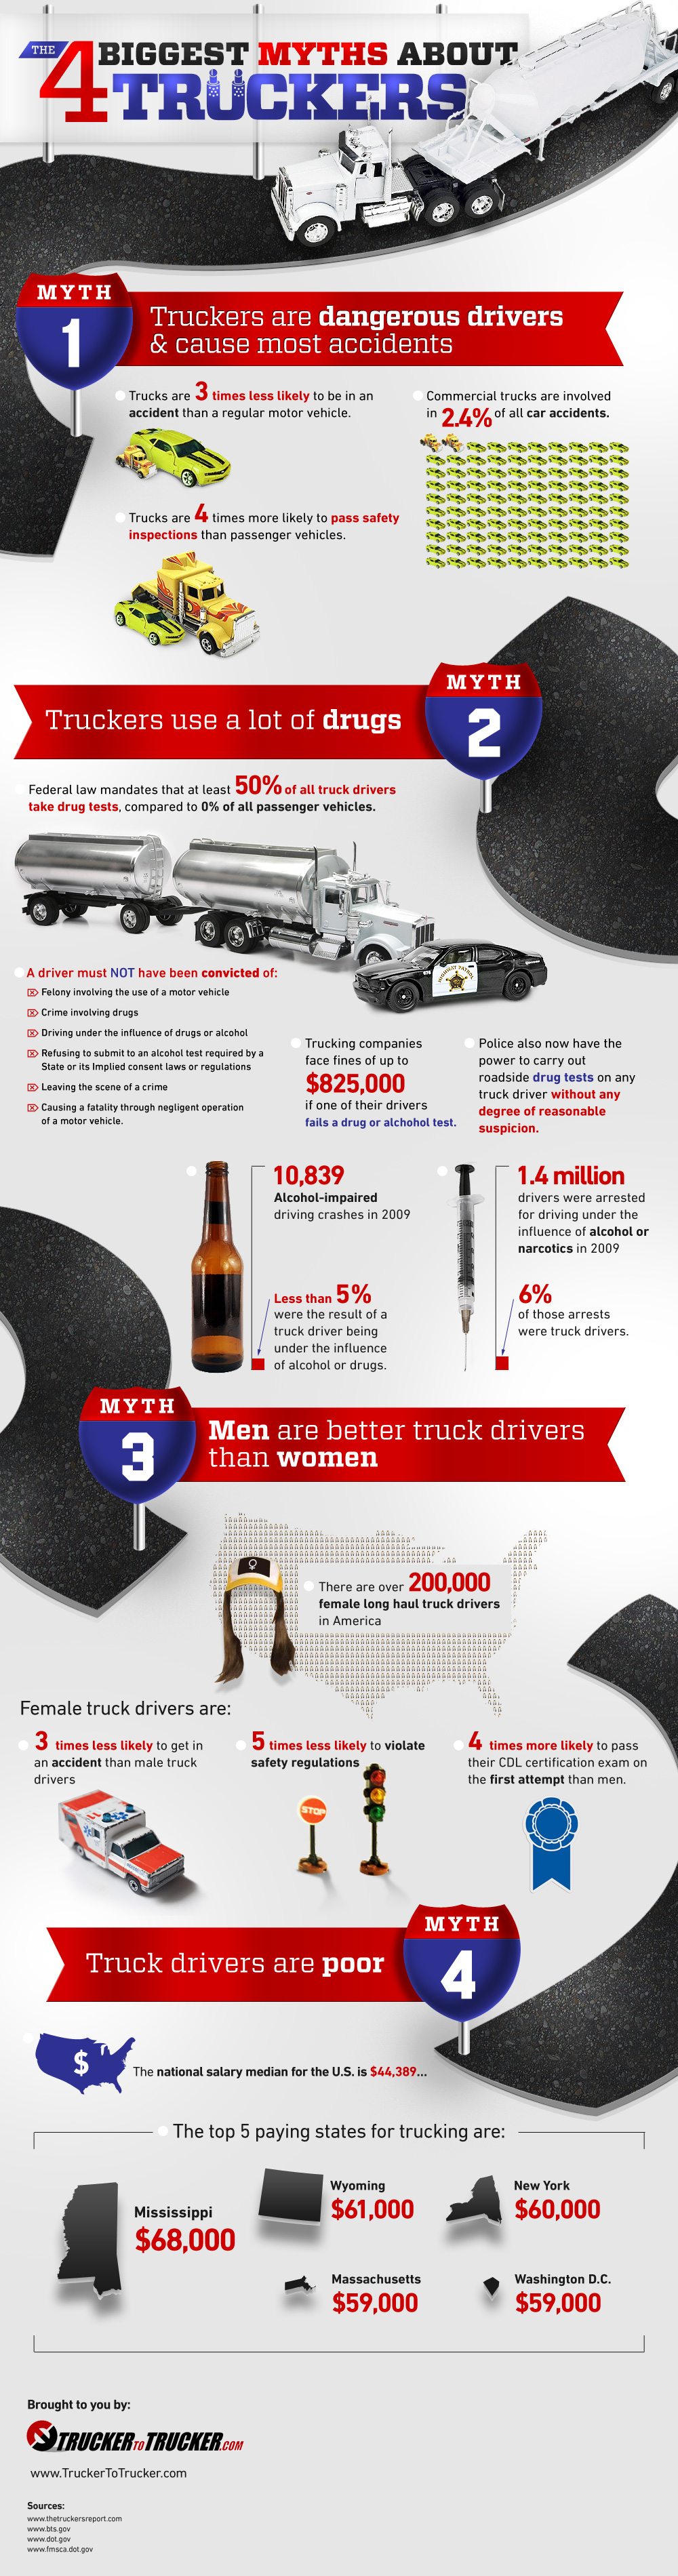 Refuting Myths About The Nation's Truck Drivers